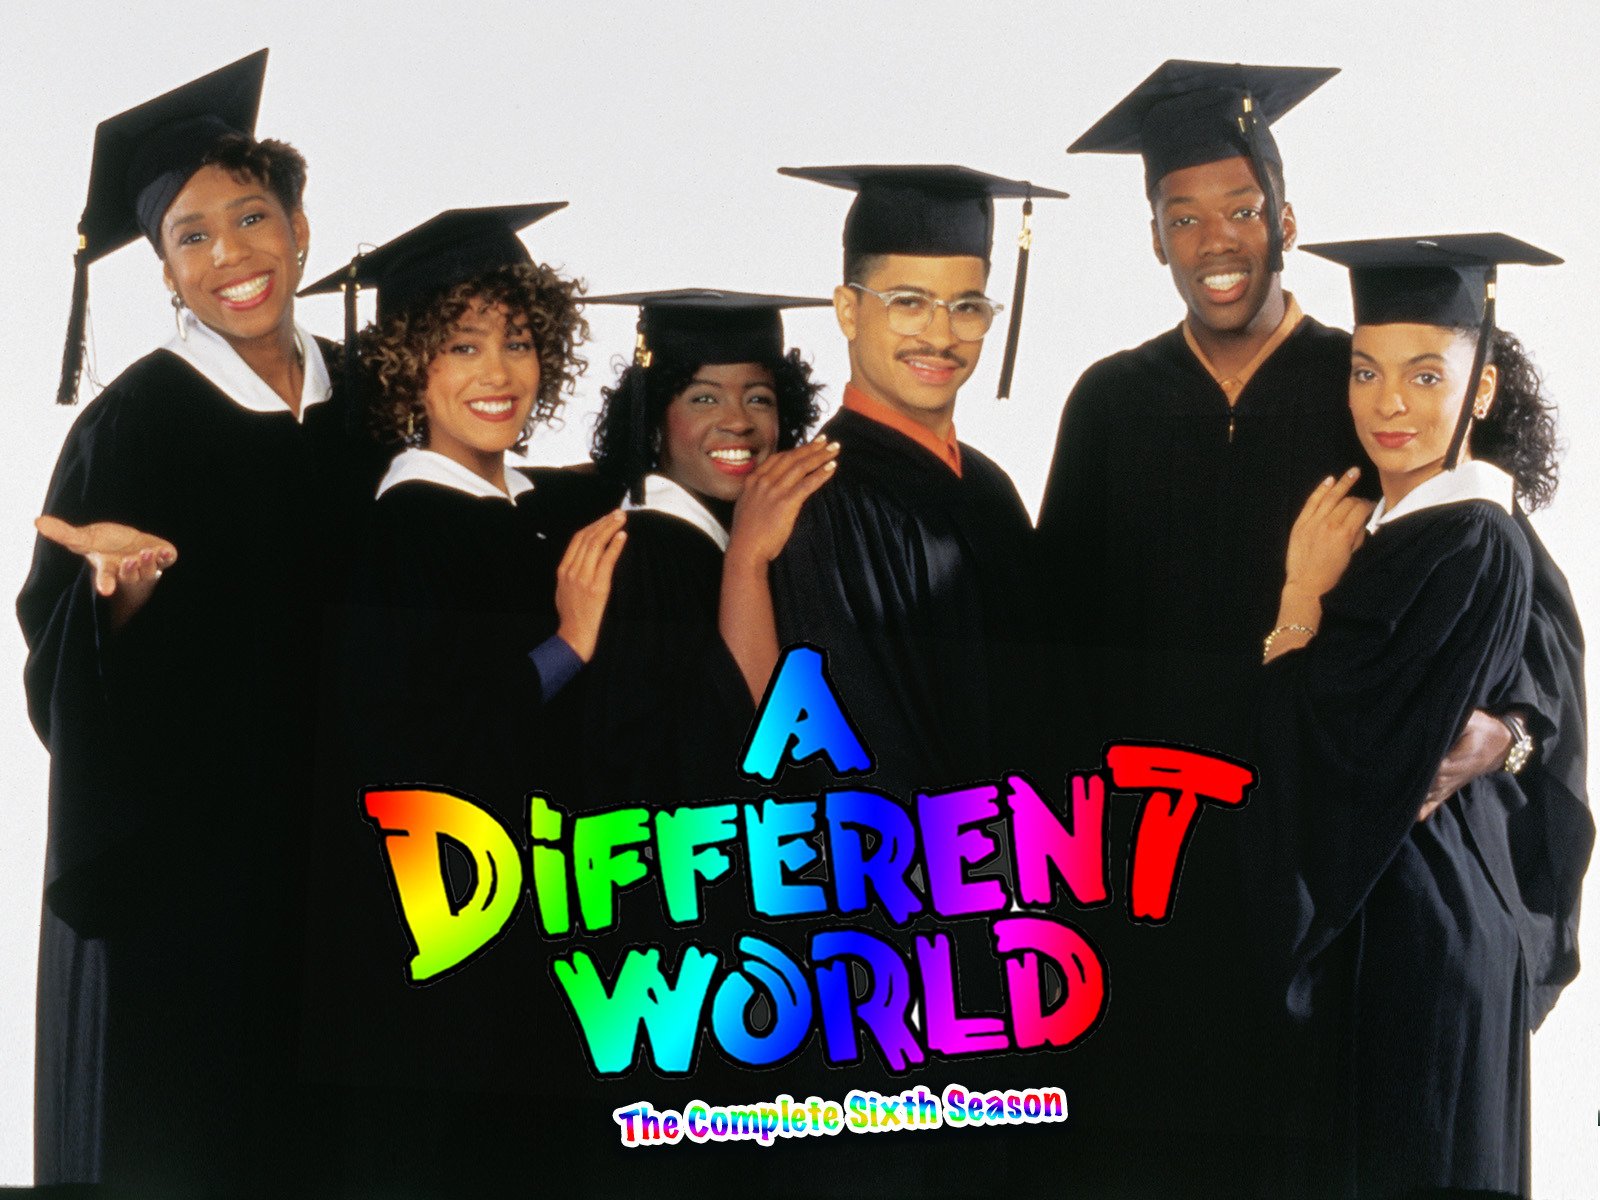 Watch A Different World Season 6 Episode 5 Really Gross Anatomy On